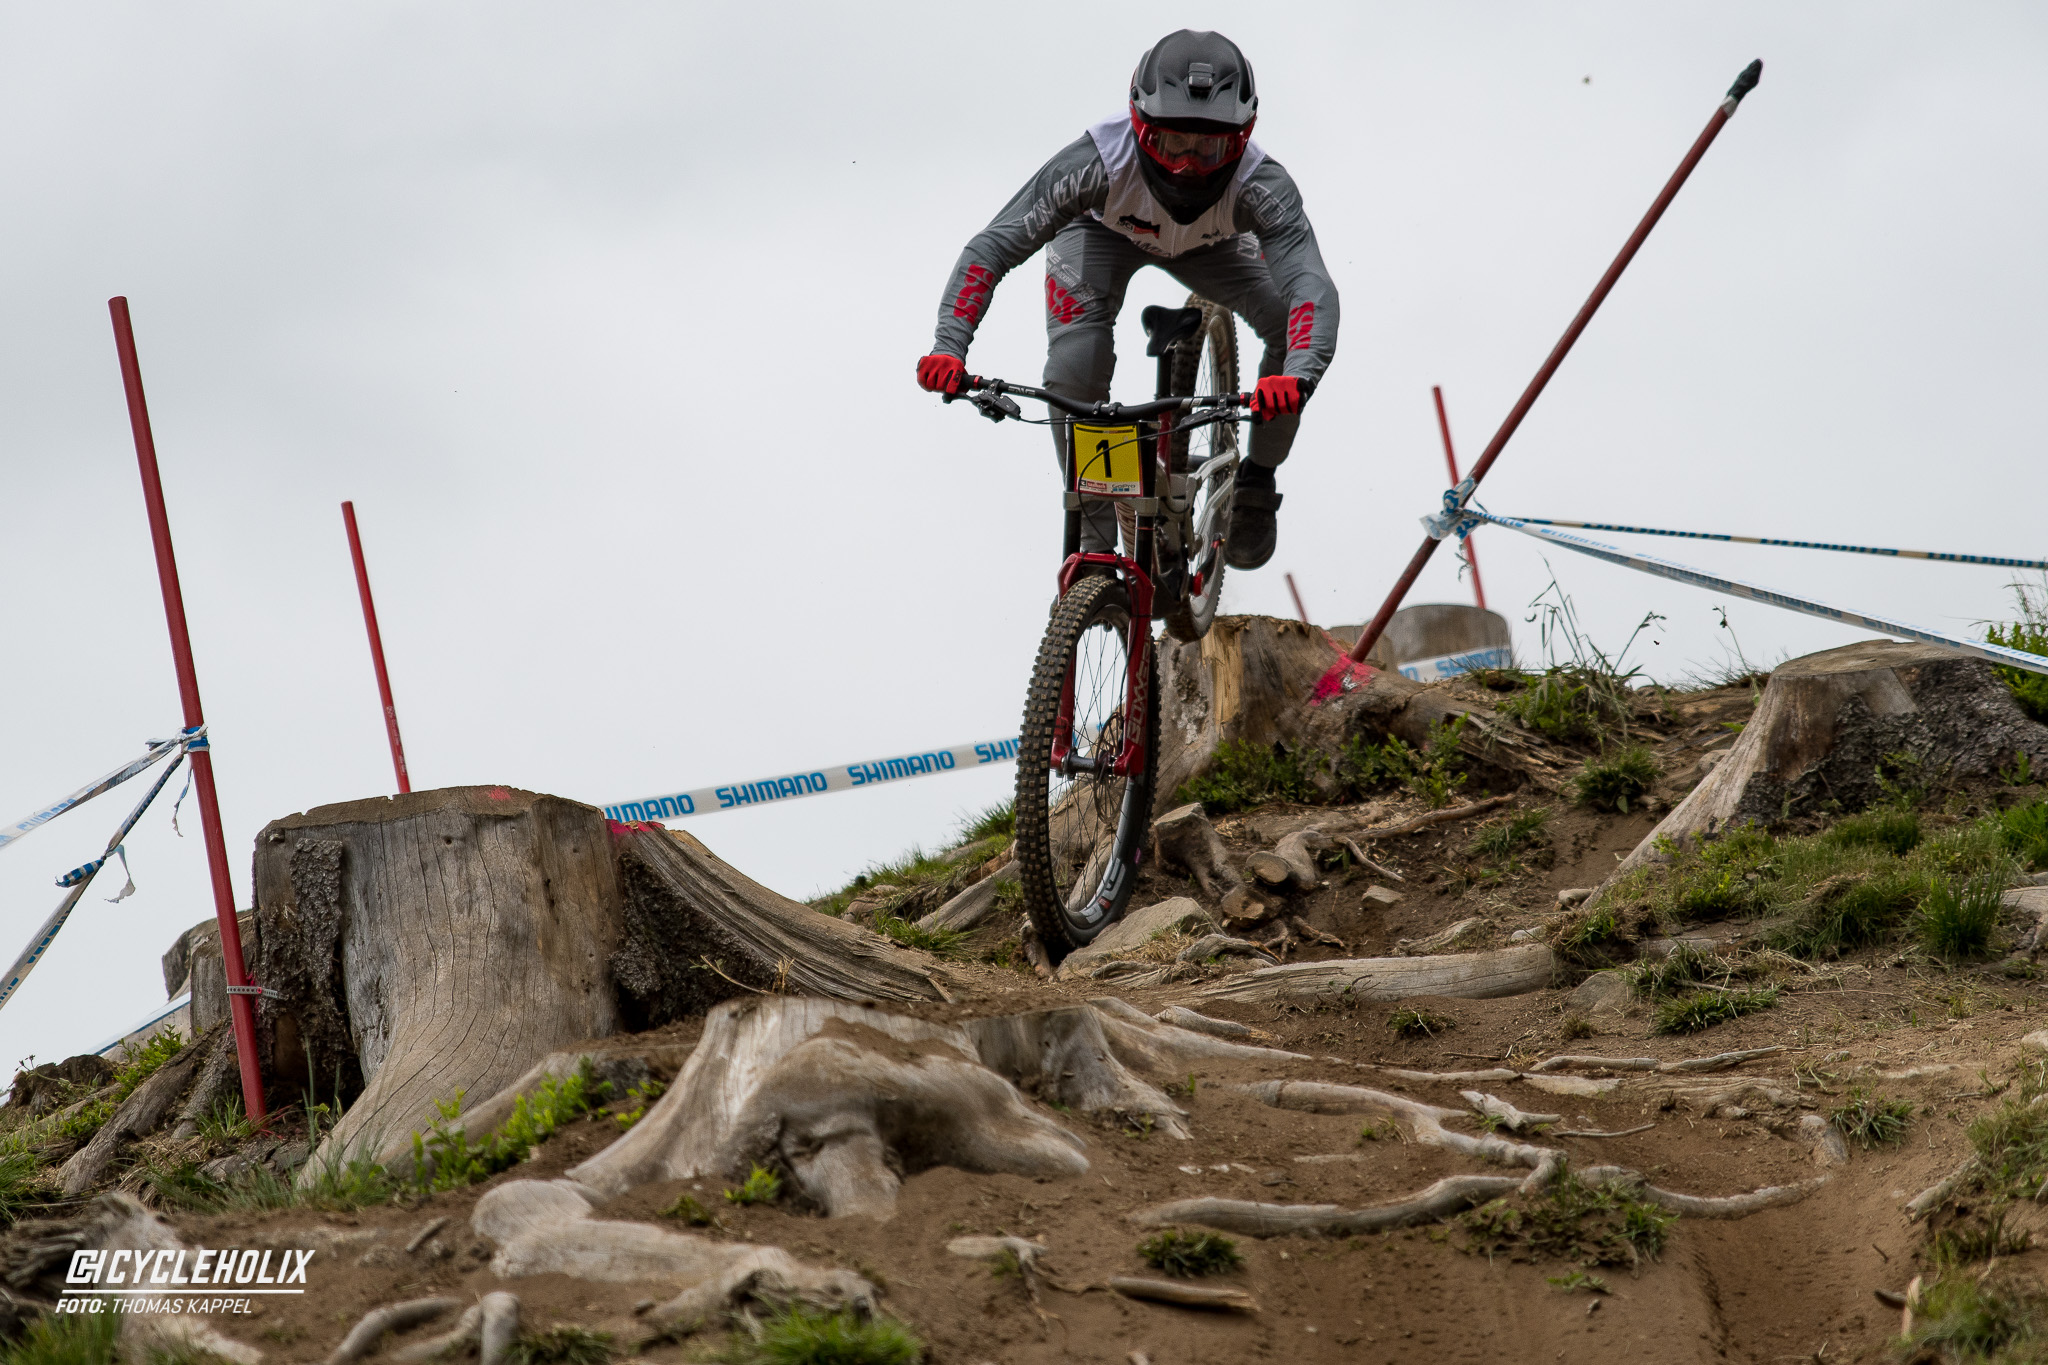 2019 Downhill Worldcup Leogang Finale Action QA 13 Cycleholix